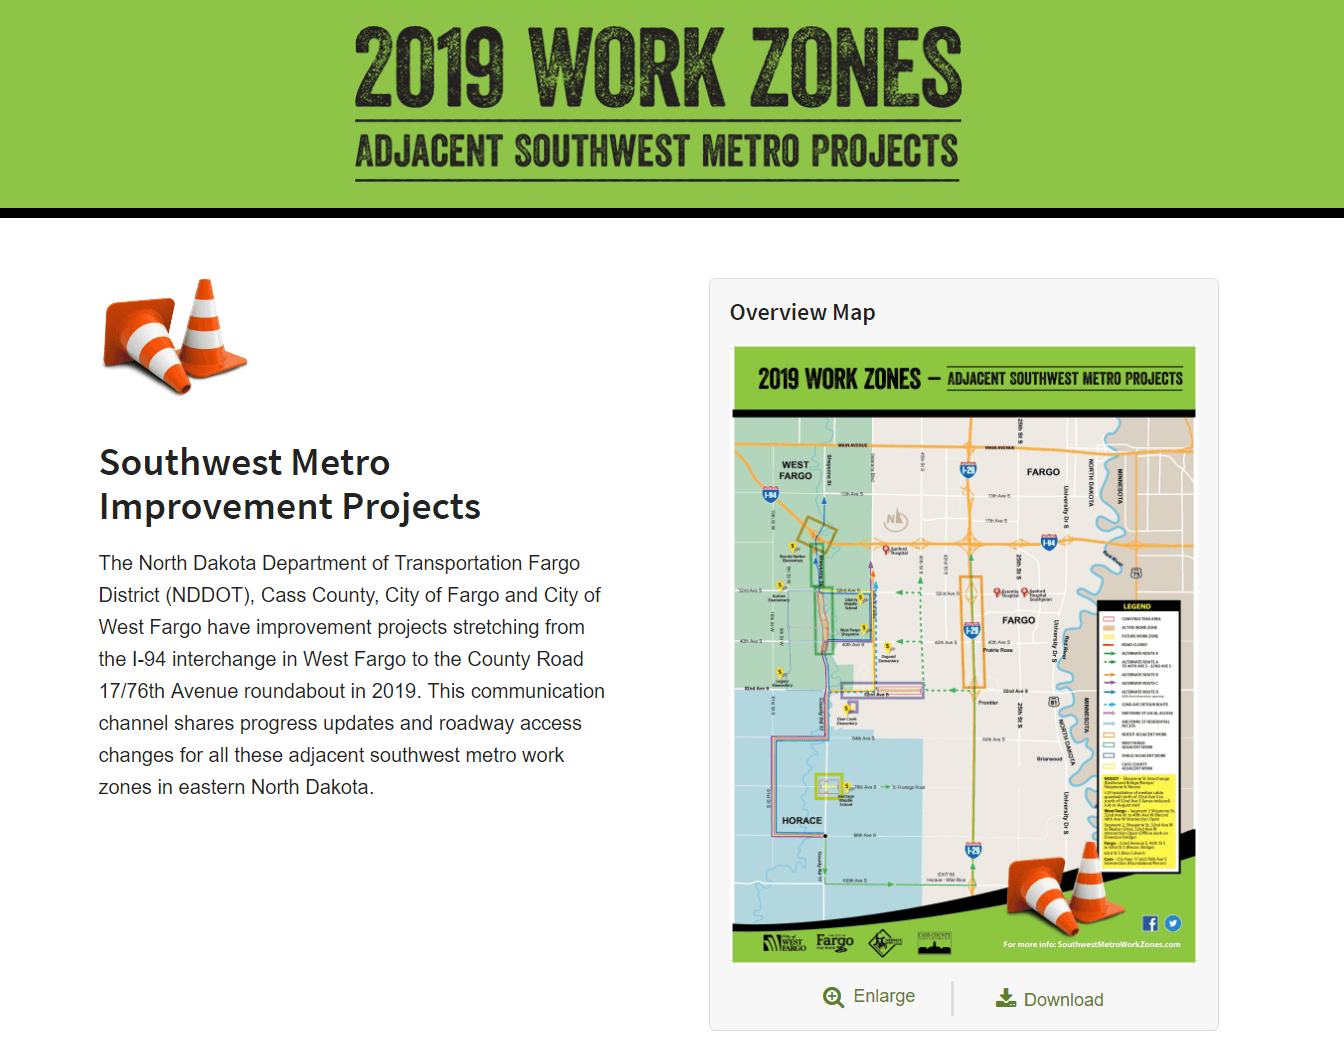 2019 Southwest Metro Work Zones Map